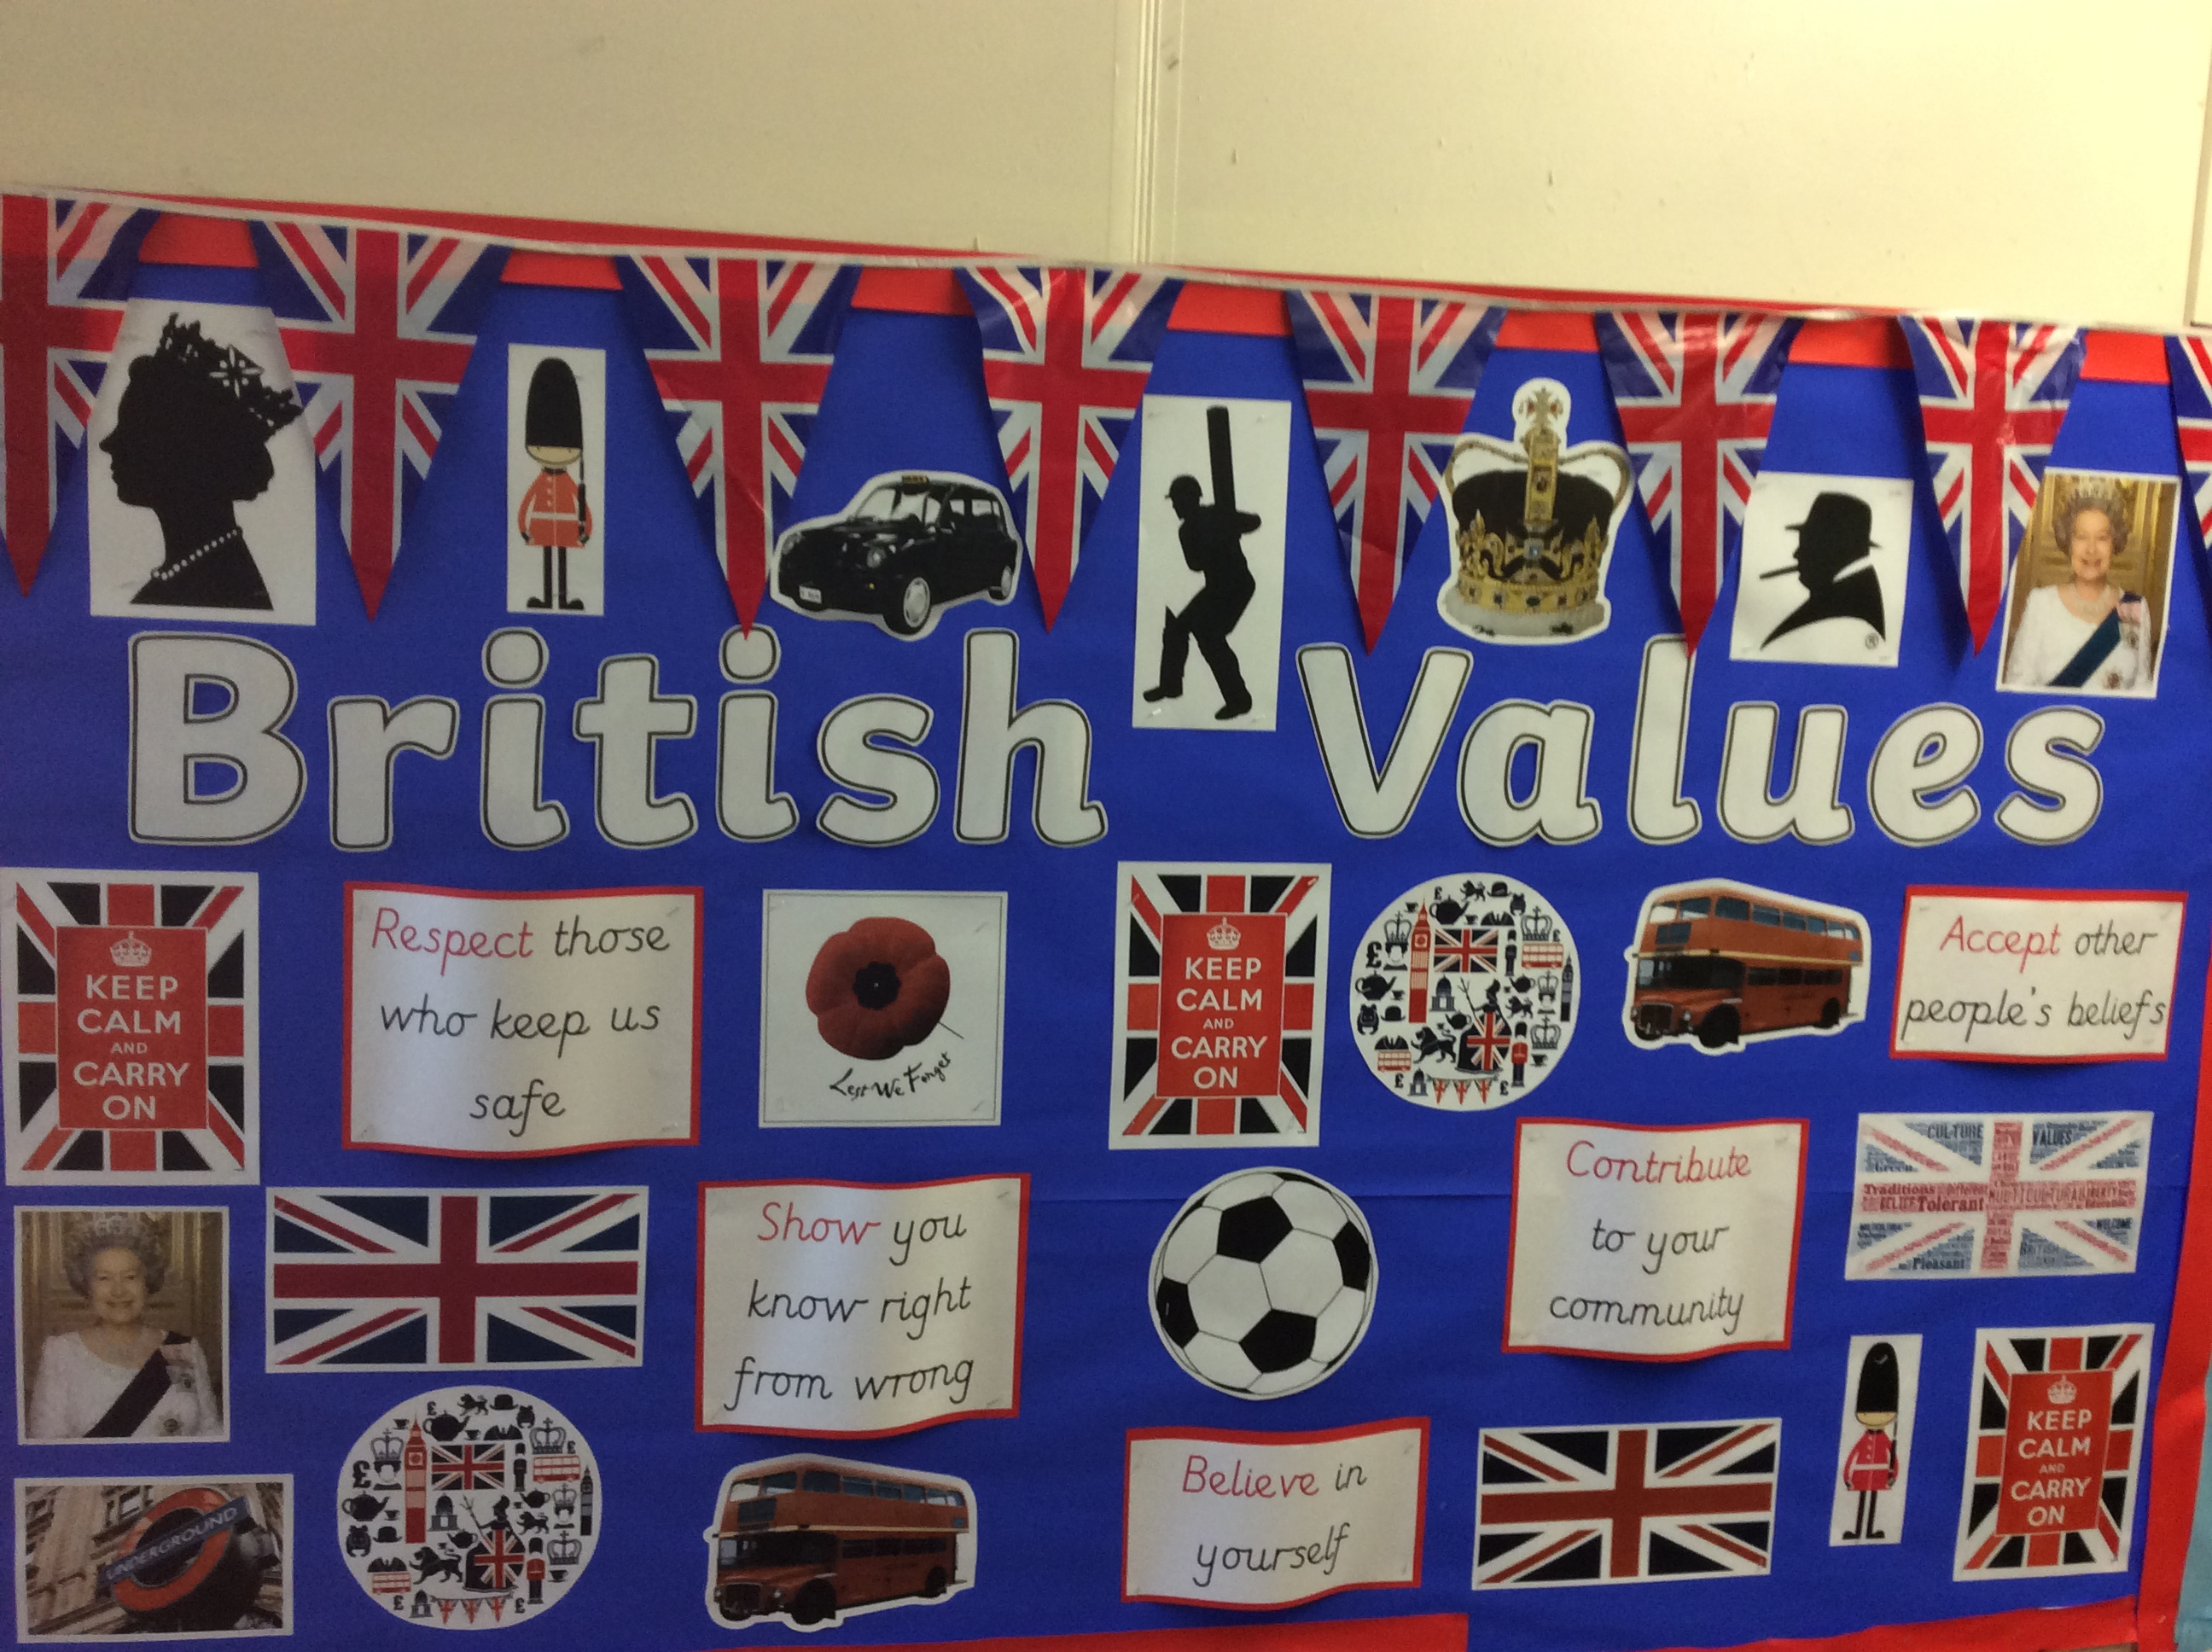 british values tardebigge ce first school tardebigge ce first school proudly welcomes children and their families from a range of backgrounds into our community our school values underpin the wider